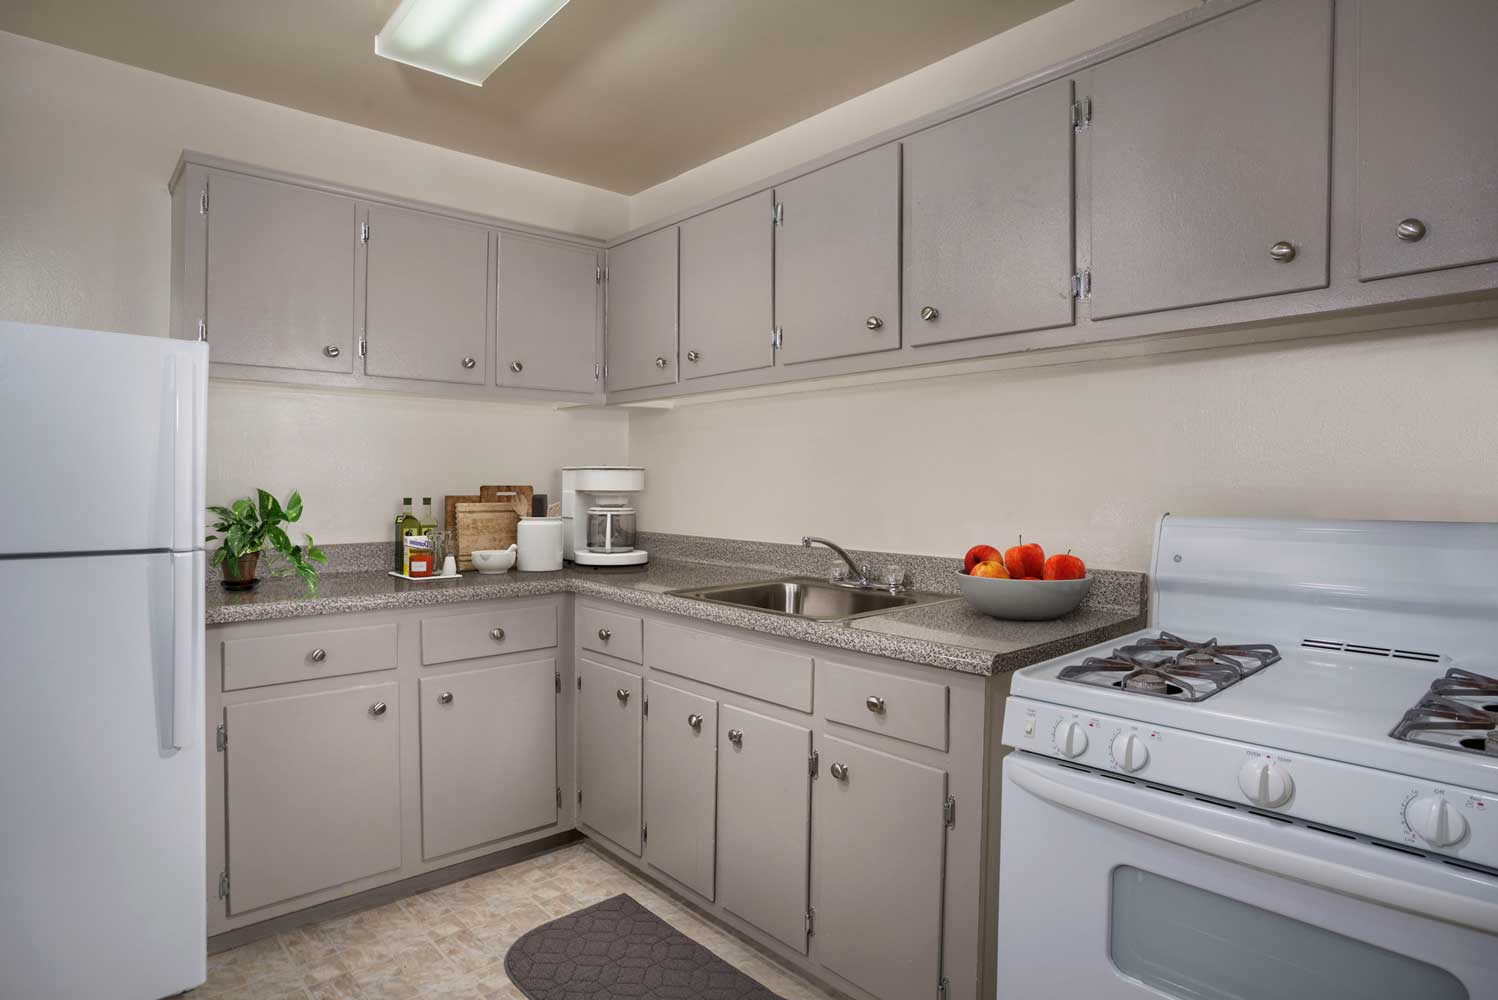 Kitchen with gas range at Carrollon Manor Apartments in New Carrollton, MD